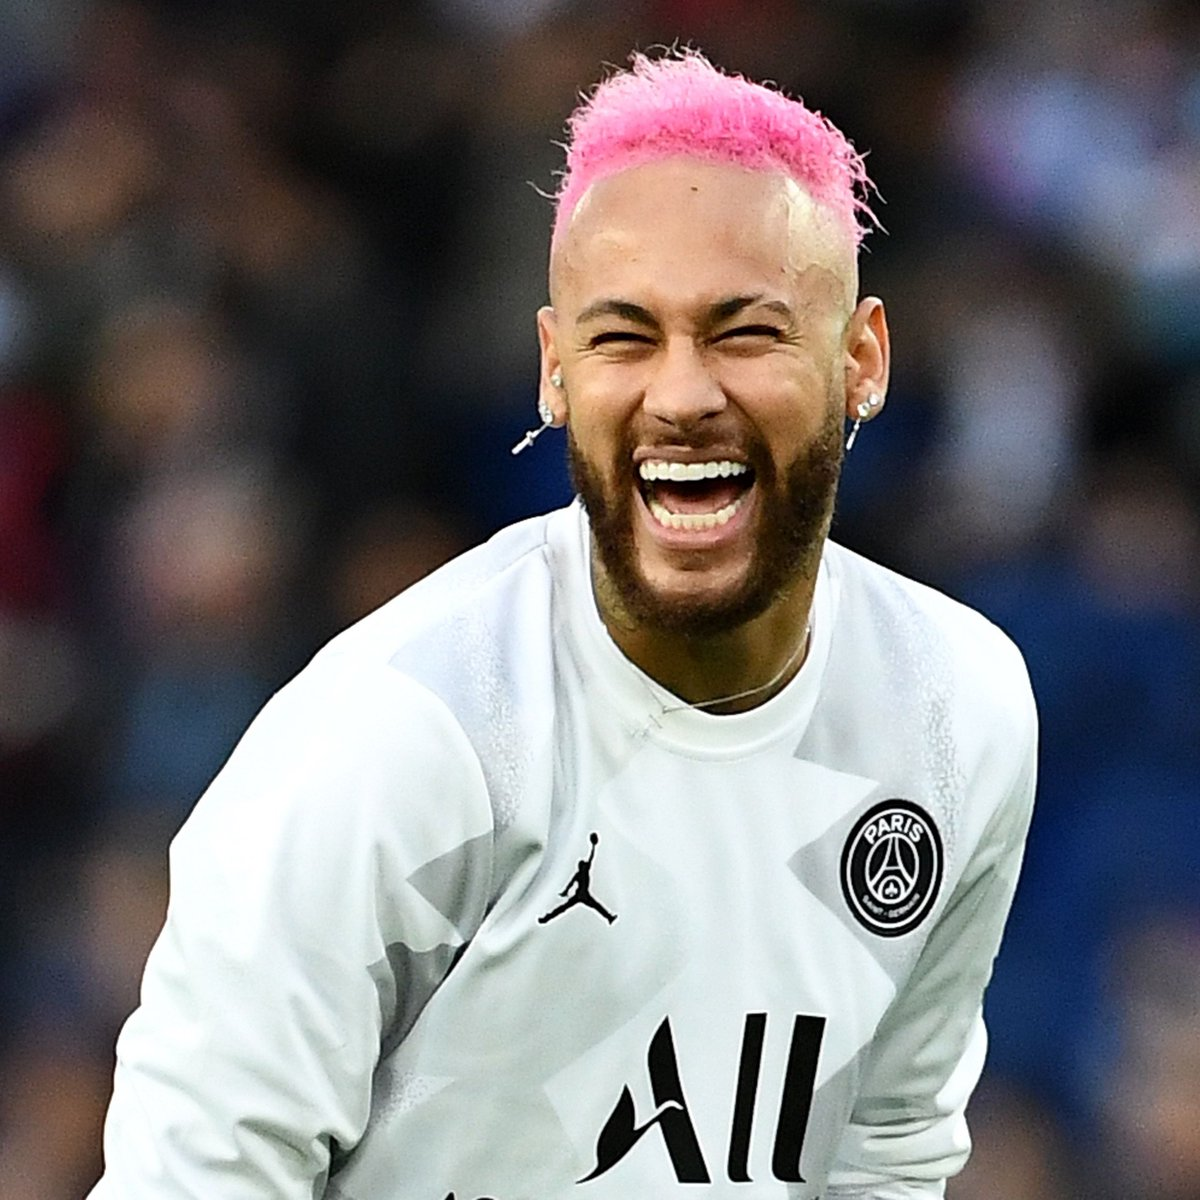 Barcelona are hoping to sign Neymar in a swap deal that would see Antoine Griezmann join PSG this summer, according to Sky Sports News.   <br>http://pic.twitter.com/IoSx24j8B0